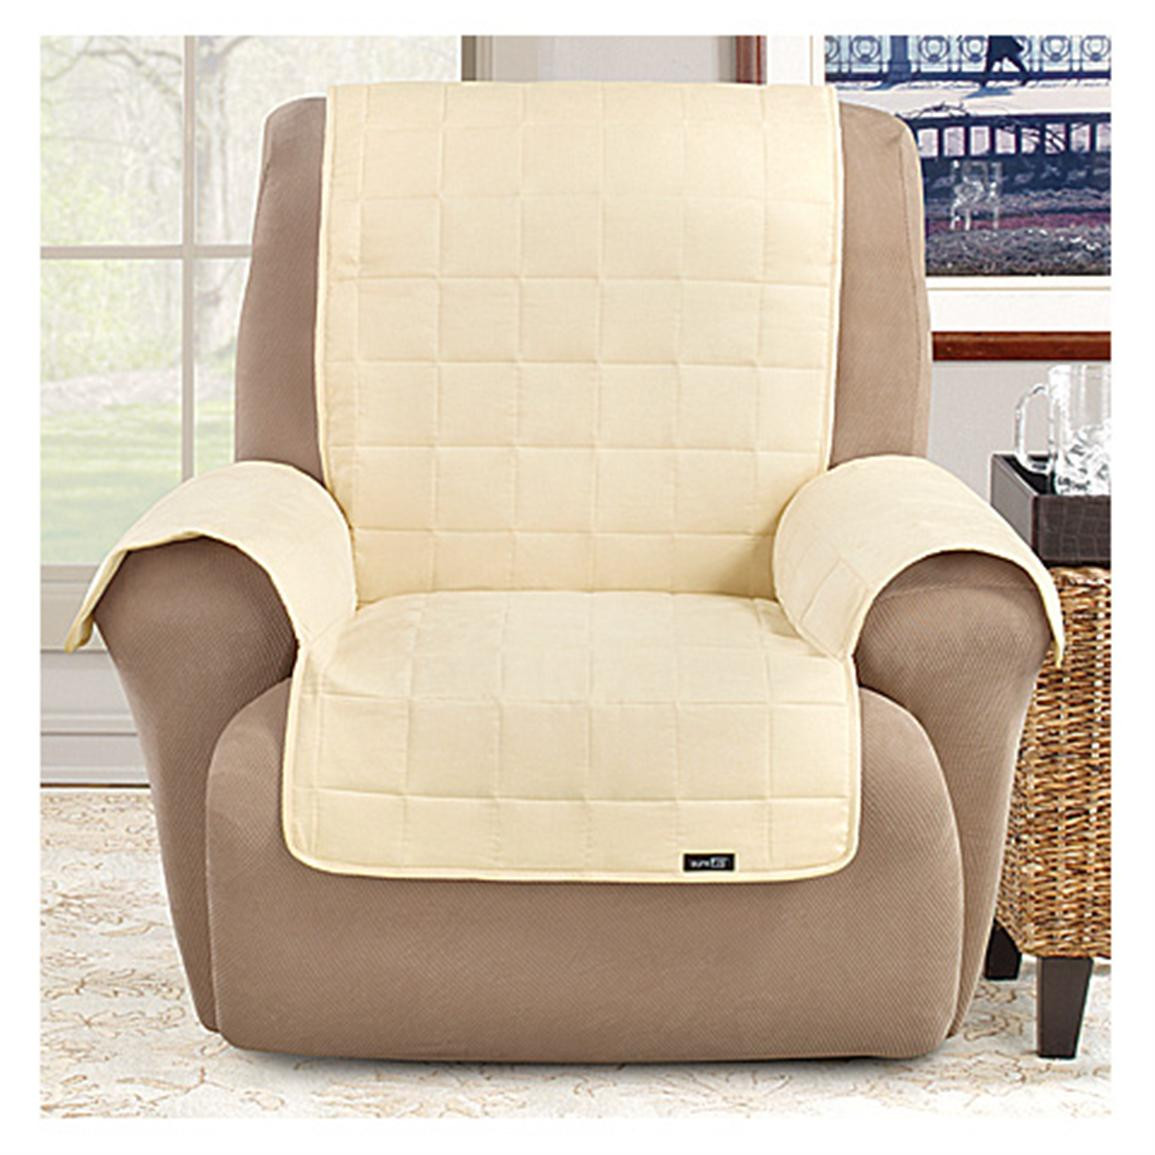 Best ideas about Surefit Chair Cover . Save or Pin Sure Fit Waterproof Pet Cover Furniture Covers Now.